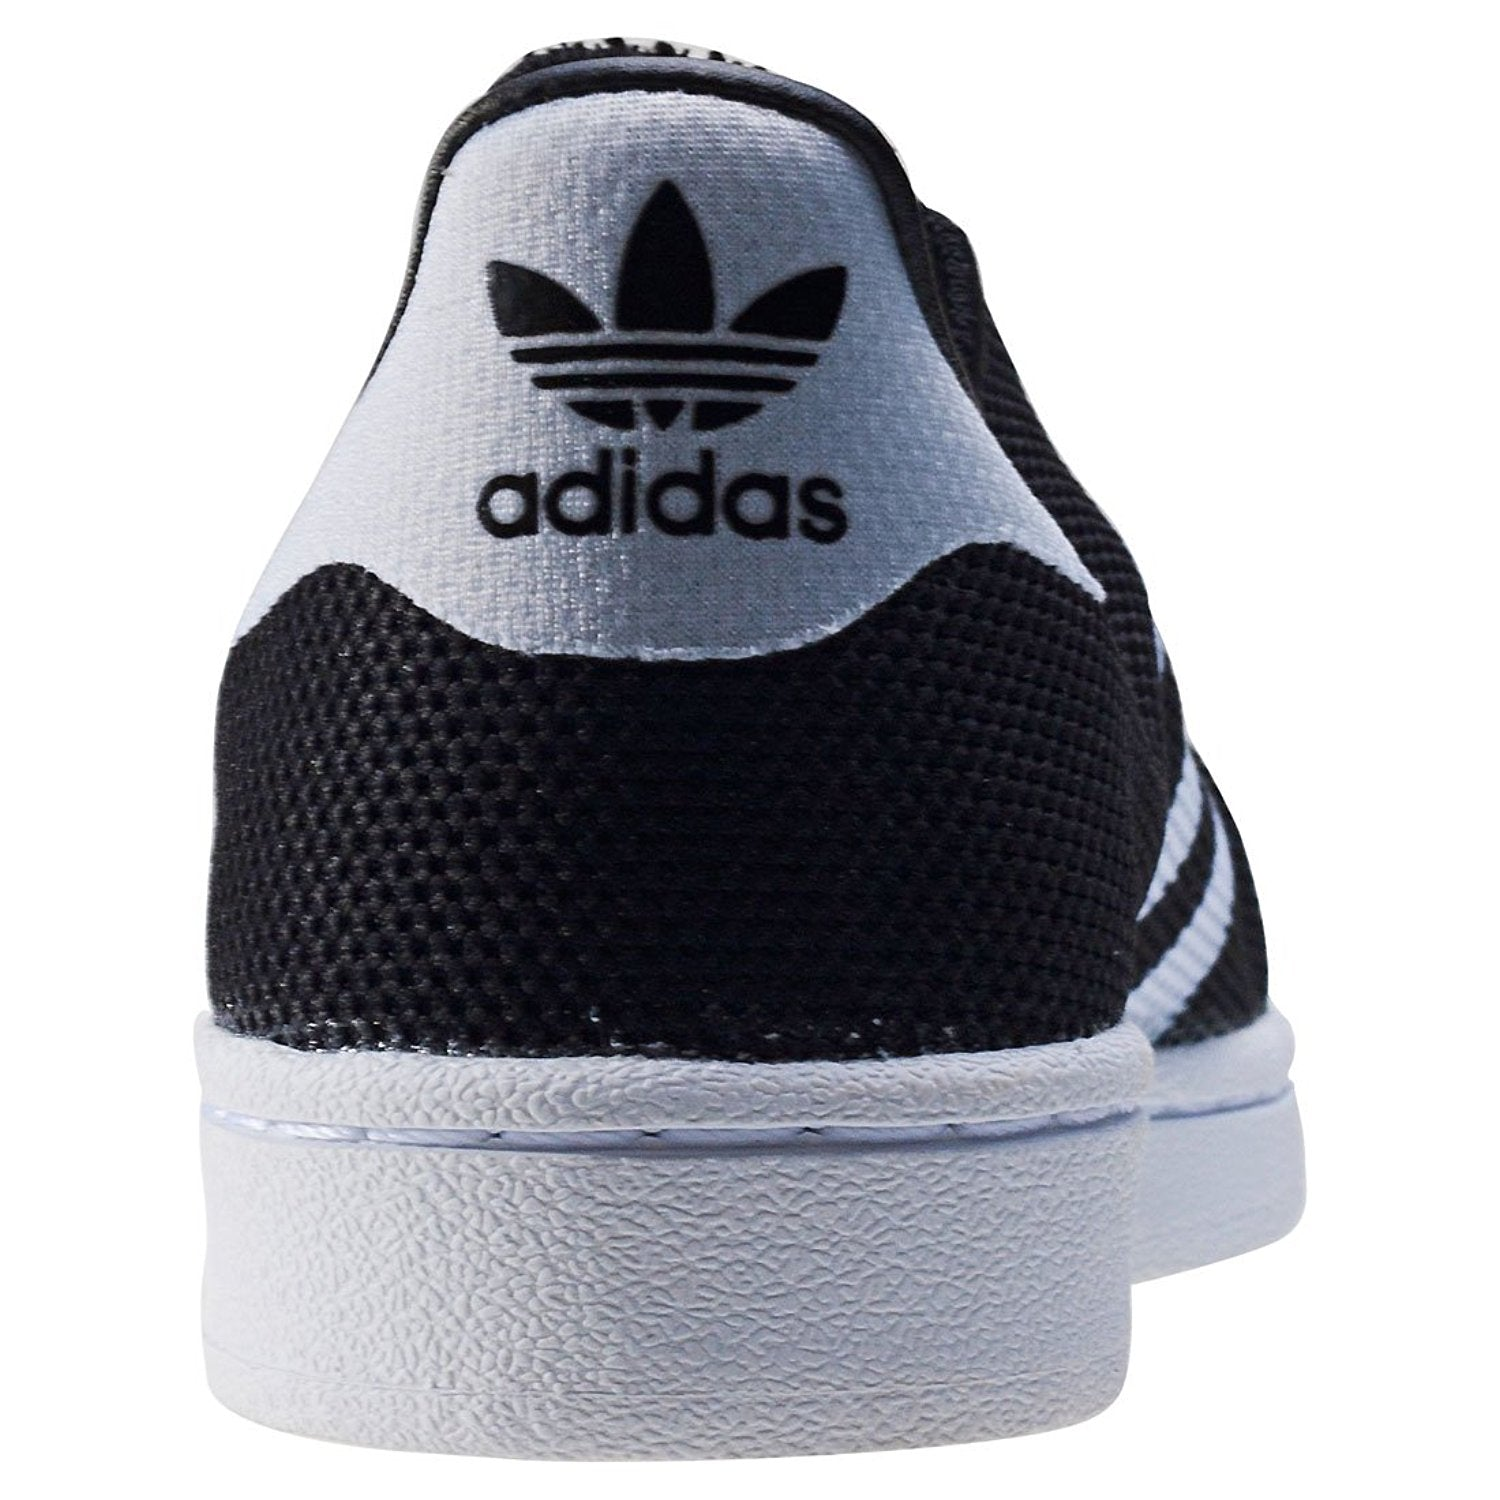 Last 14 x adidas Original Superstar Junior Trainers rrp rrp rrp 80 Only b32ae8